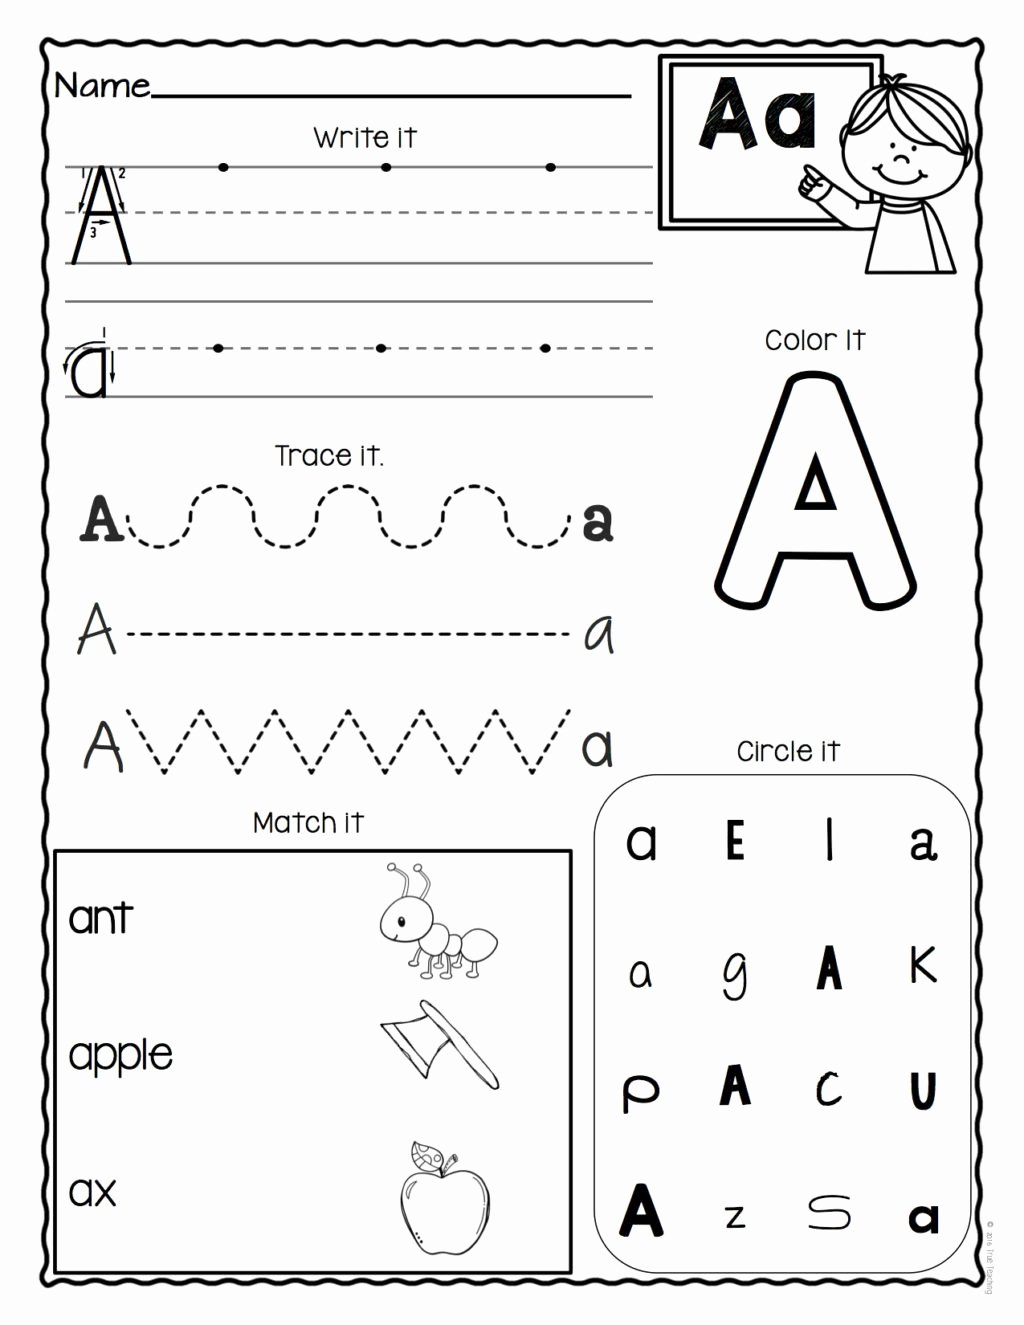 Free Printable Letter A Worksheets for Preschoolers Kids Worksheet Preschool Letter Worksheets Free Printable